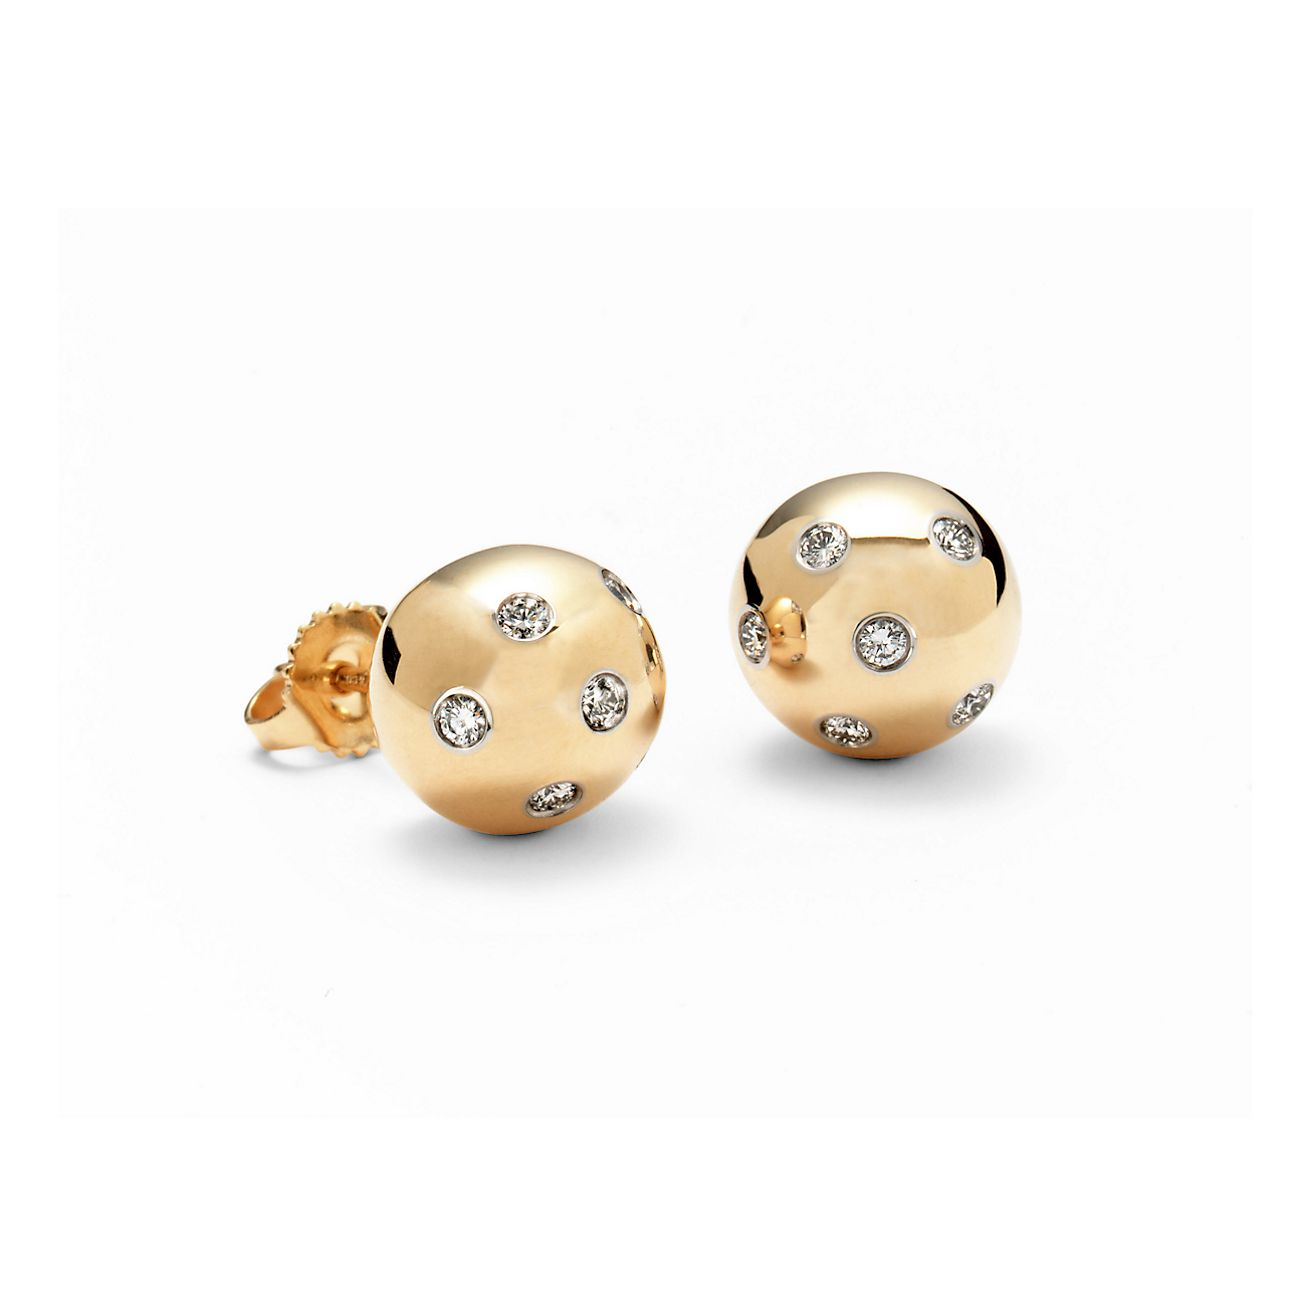 tiffany silver ball earrings uk